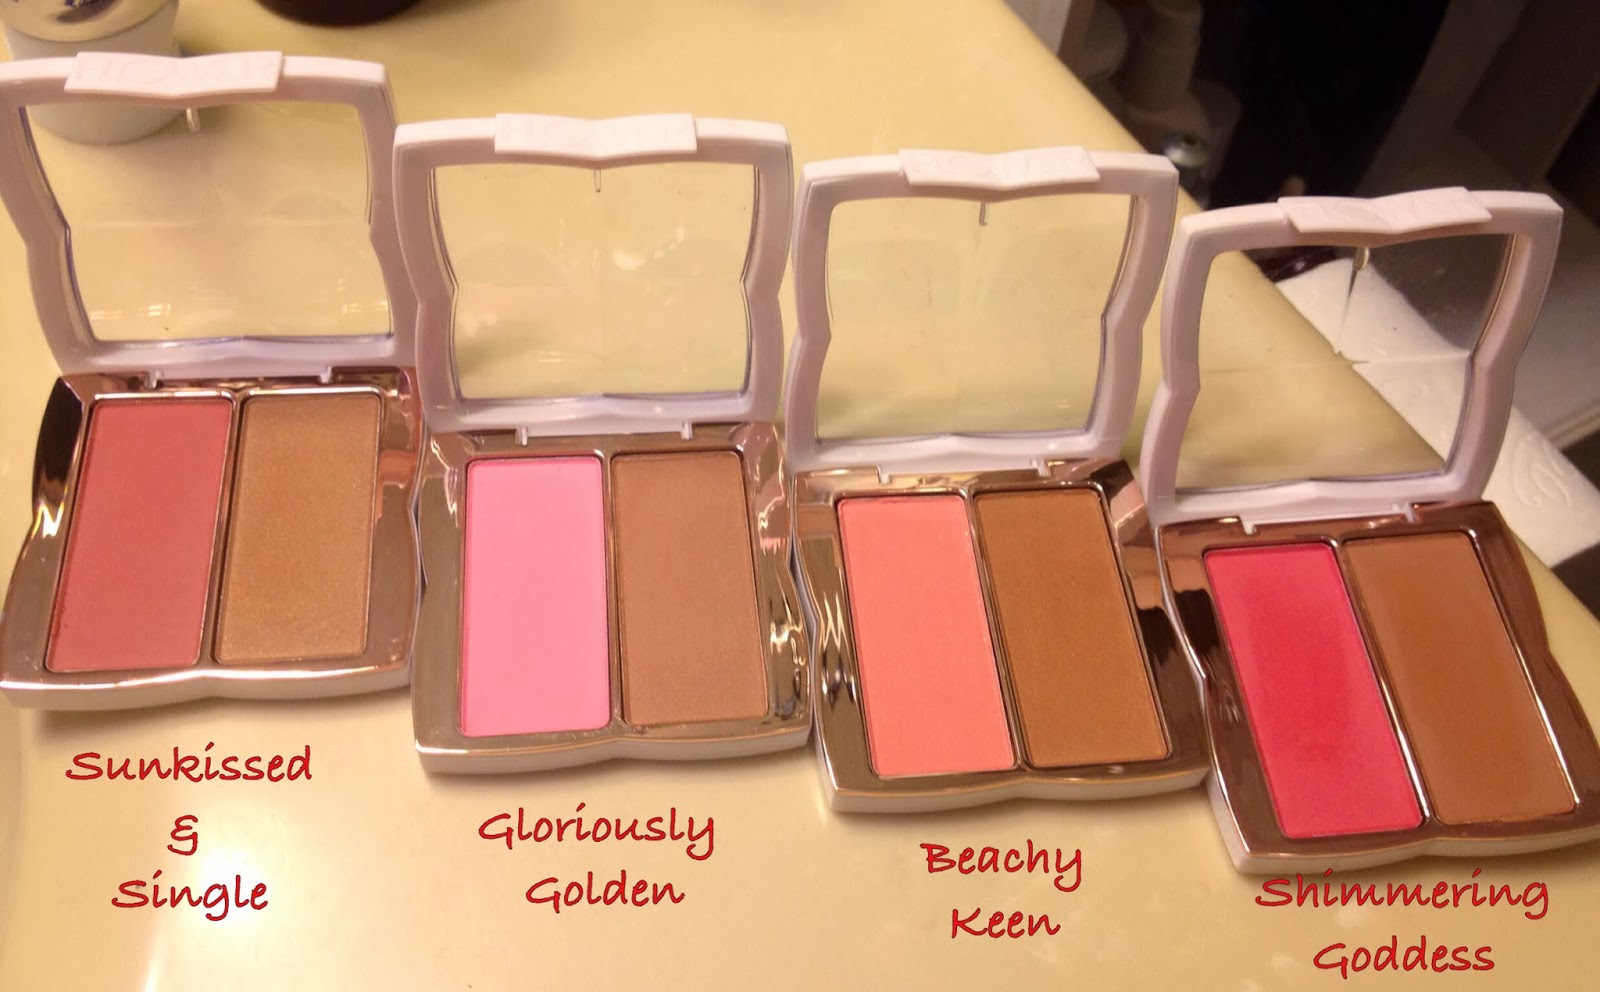 Actually erica flower beauty haul with swatches gloriously golden looks like the bronzer has some shimmers in it but it swatches totally matte sunkissed single has a matte blush izmirmasajfo